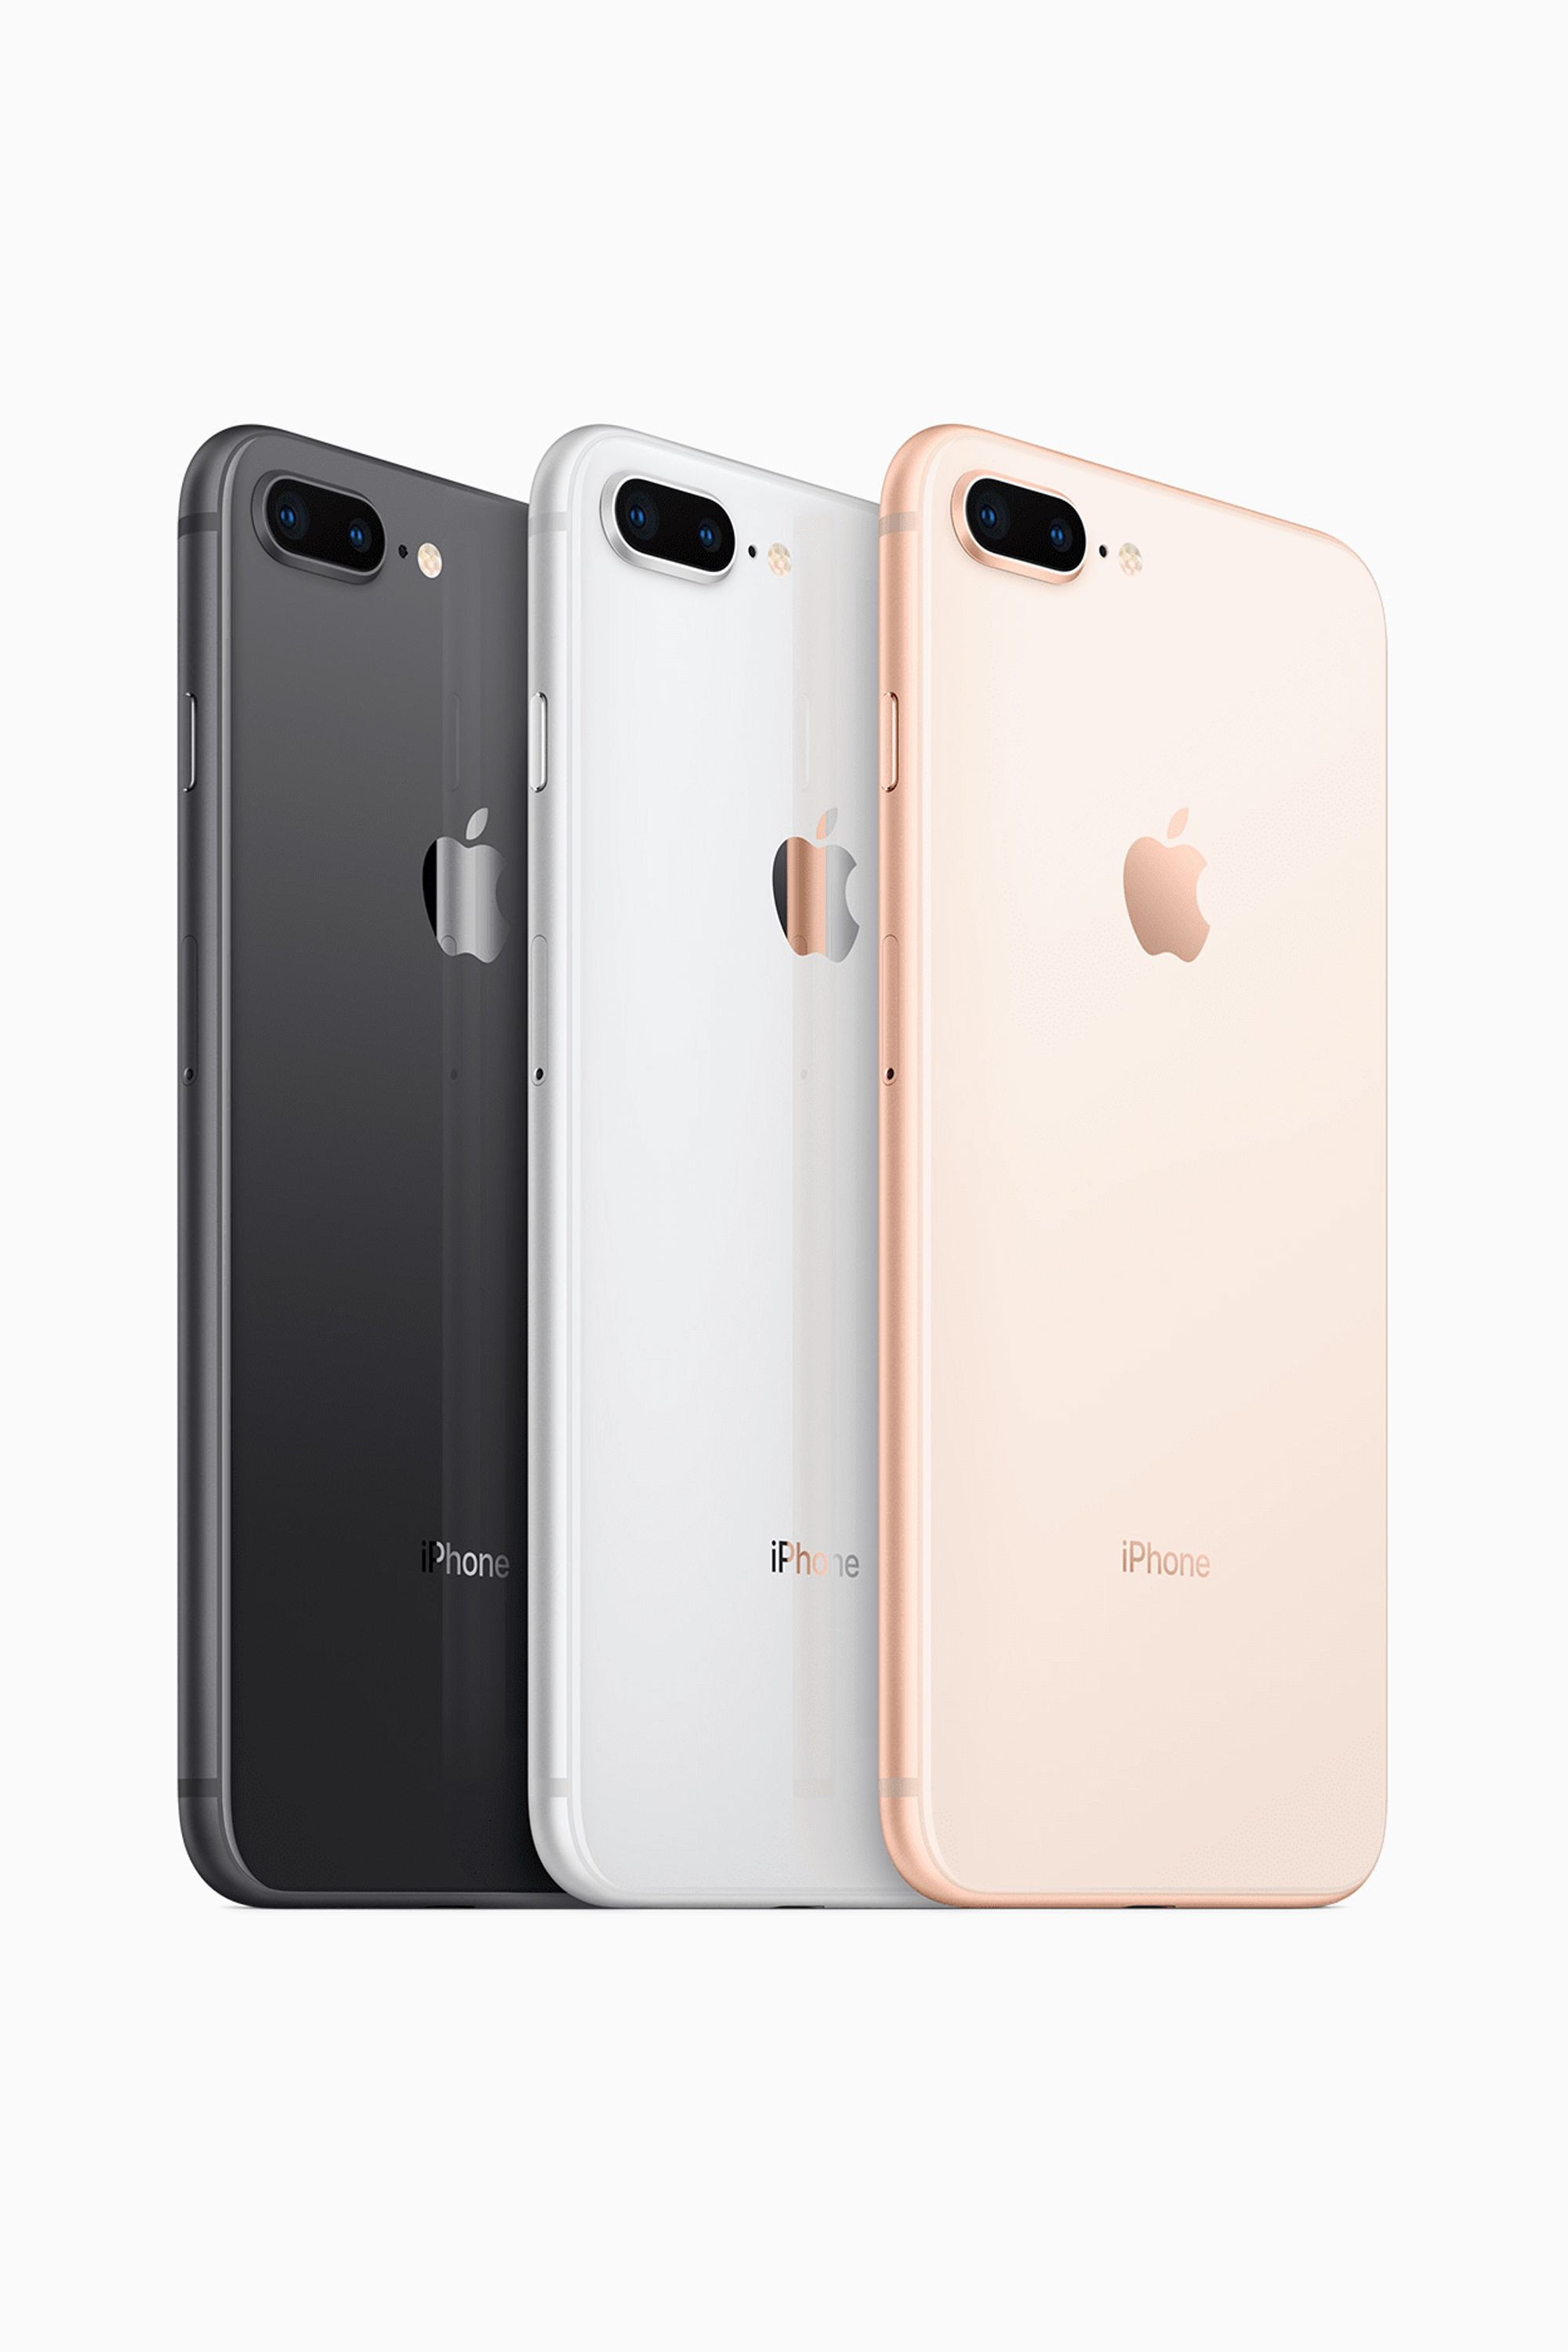 new concept bfe25 9f386 iPhone 8 Plus - Apple | Product // Design | Iphone, Gsm smartphone ...